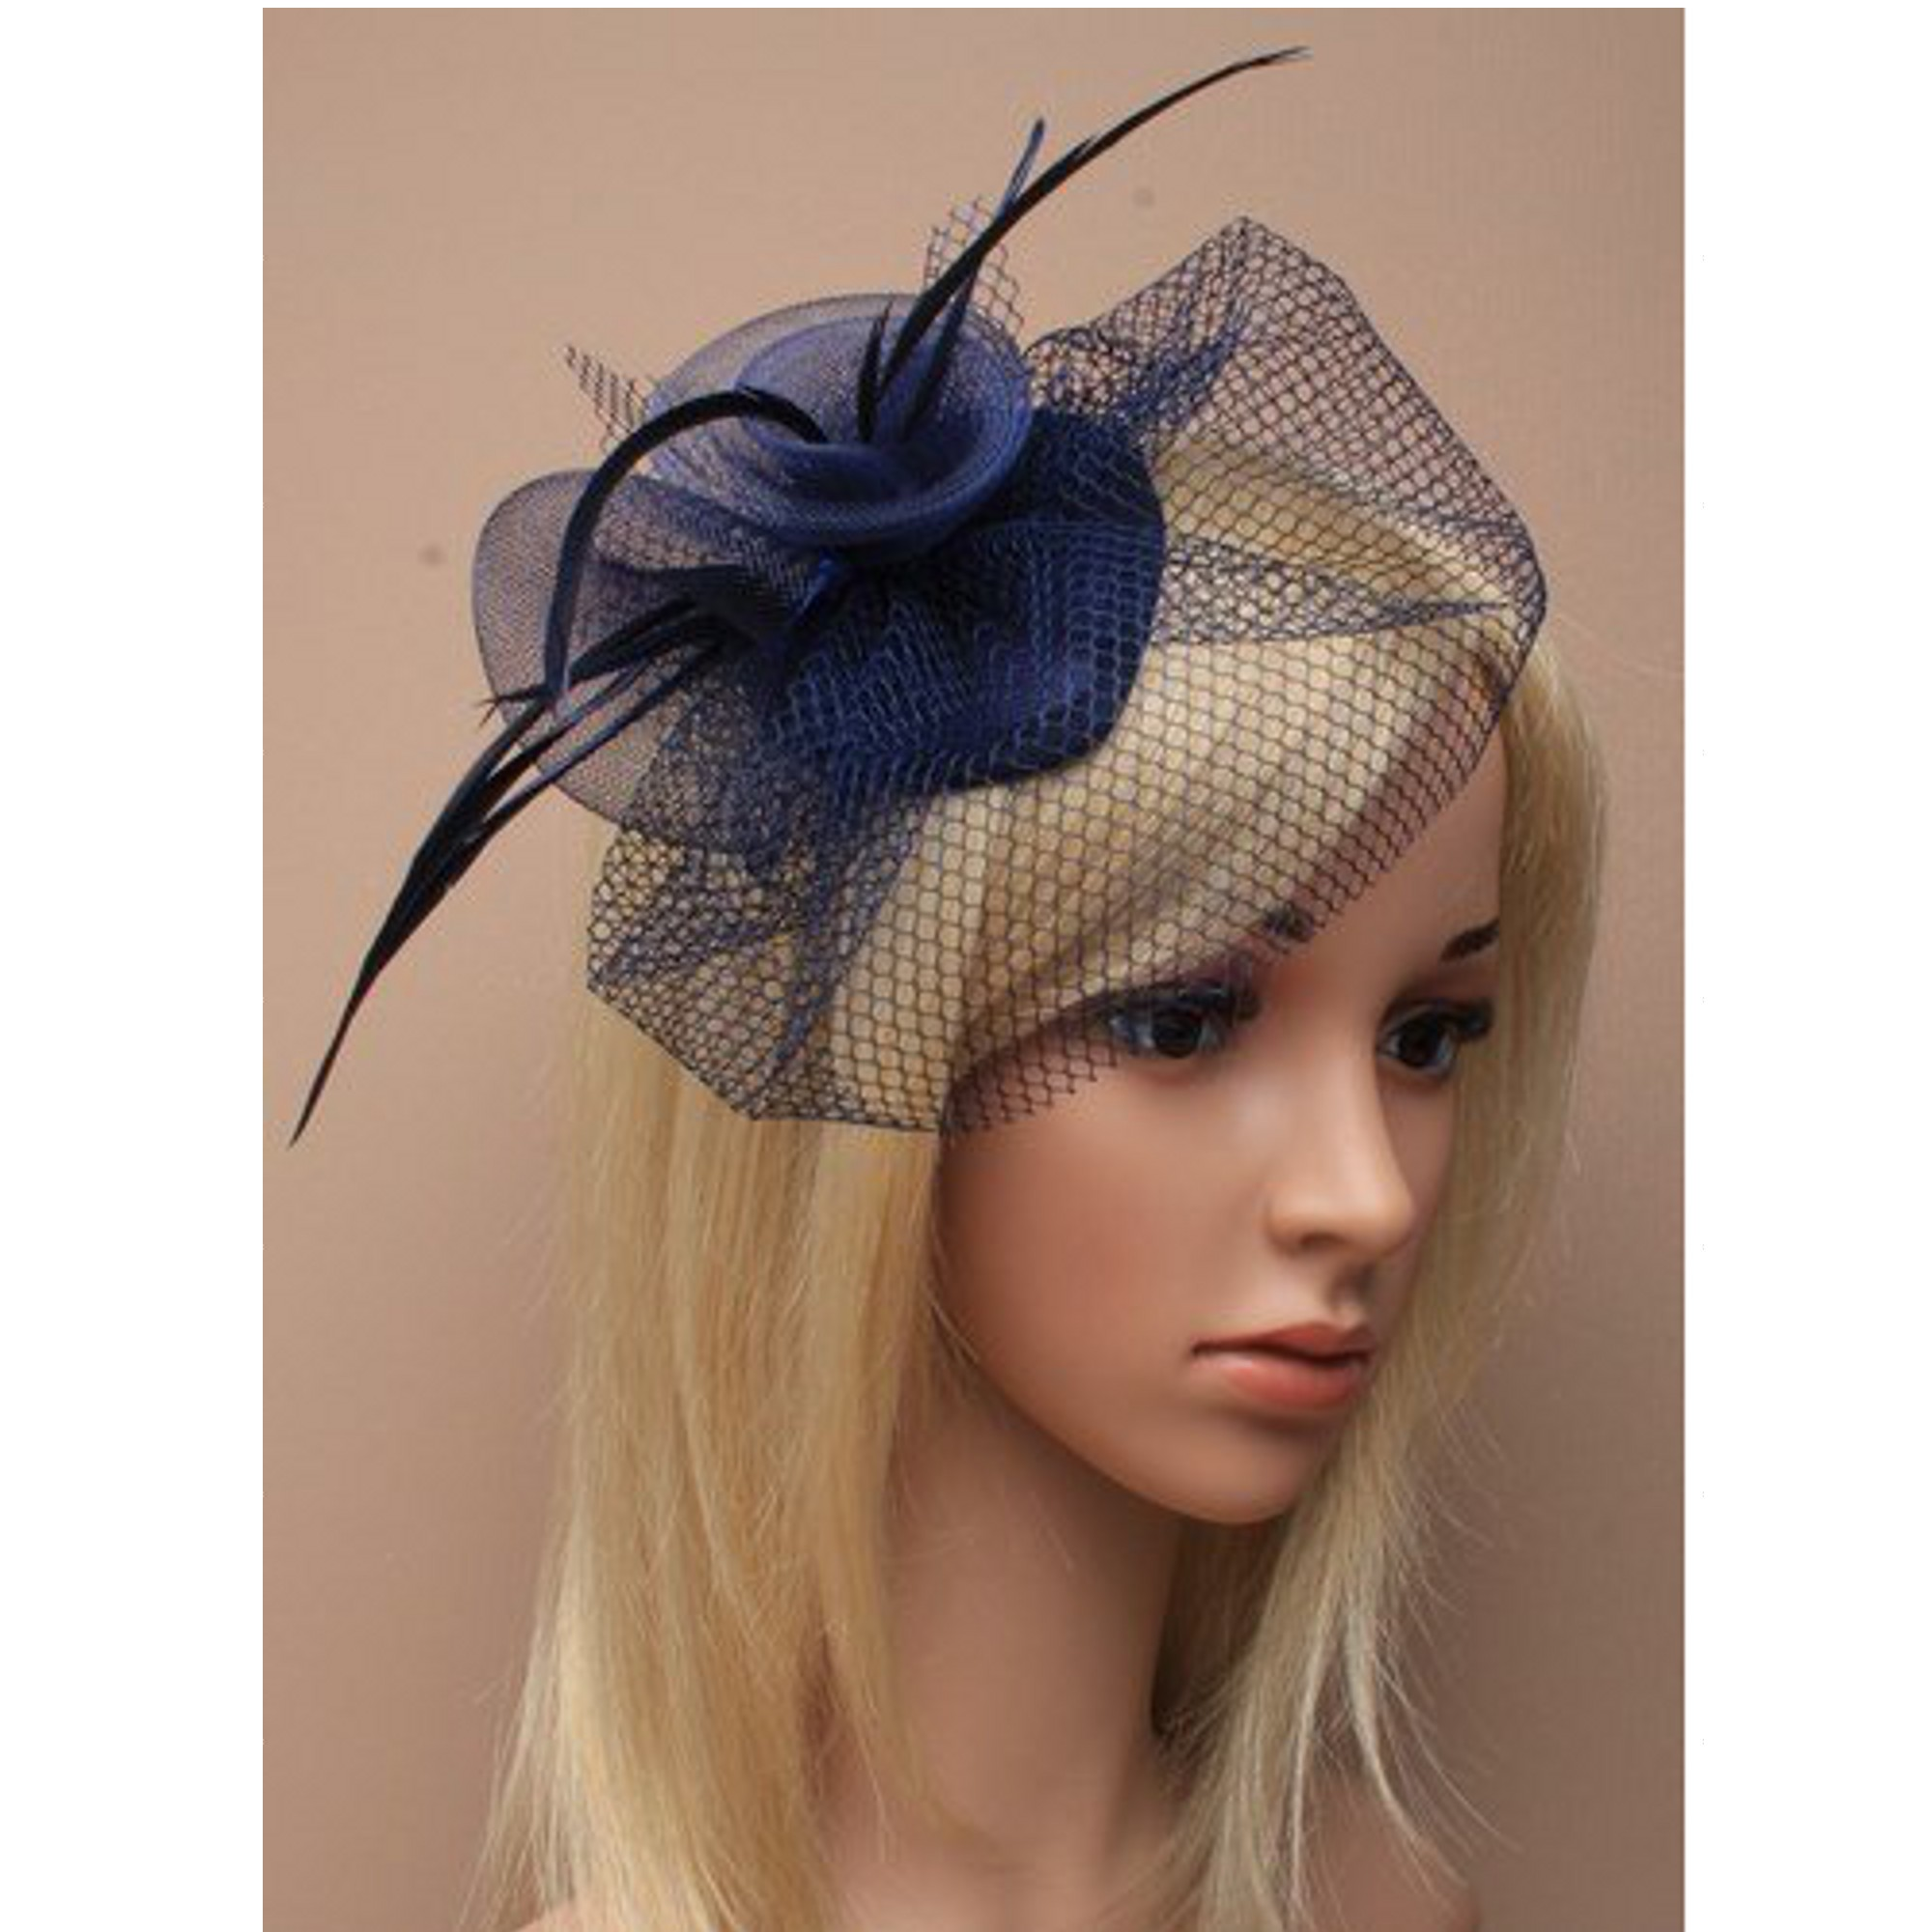 Navy Feather Net Clip Hat Fascinator Wedding Las Day Race Royal Ascot